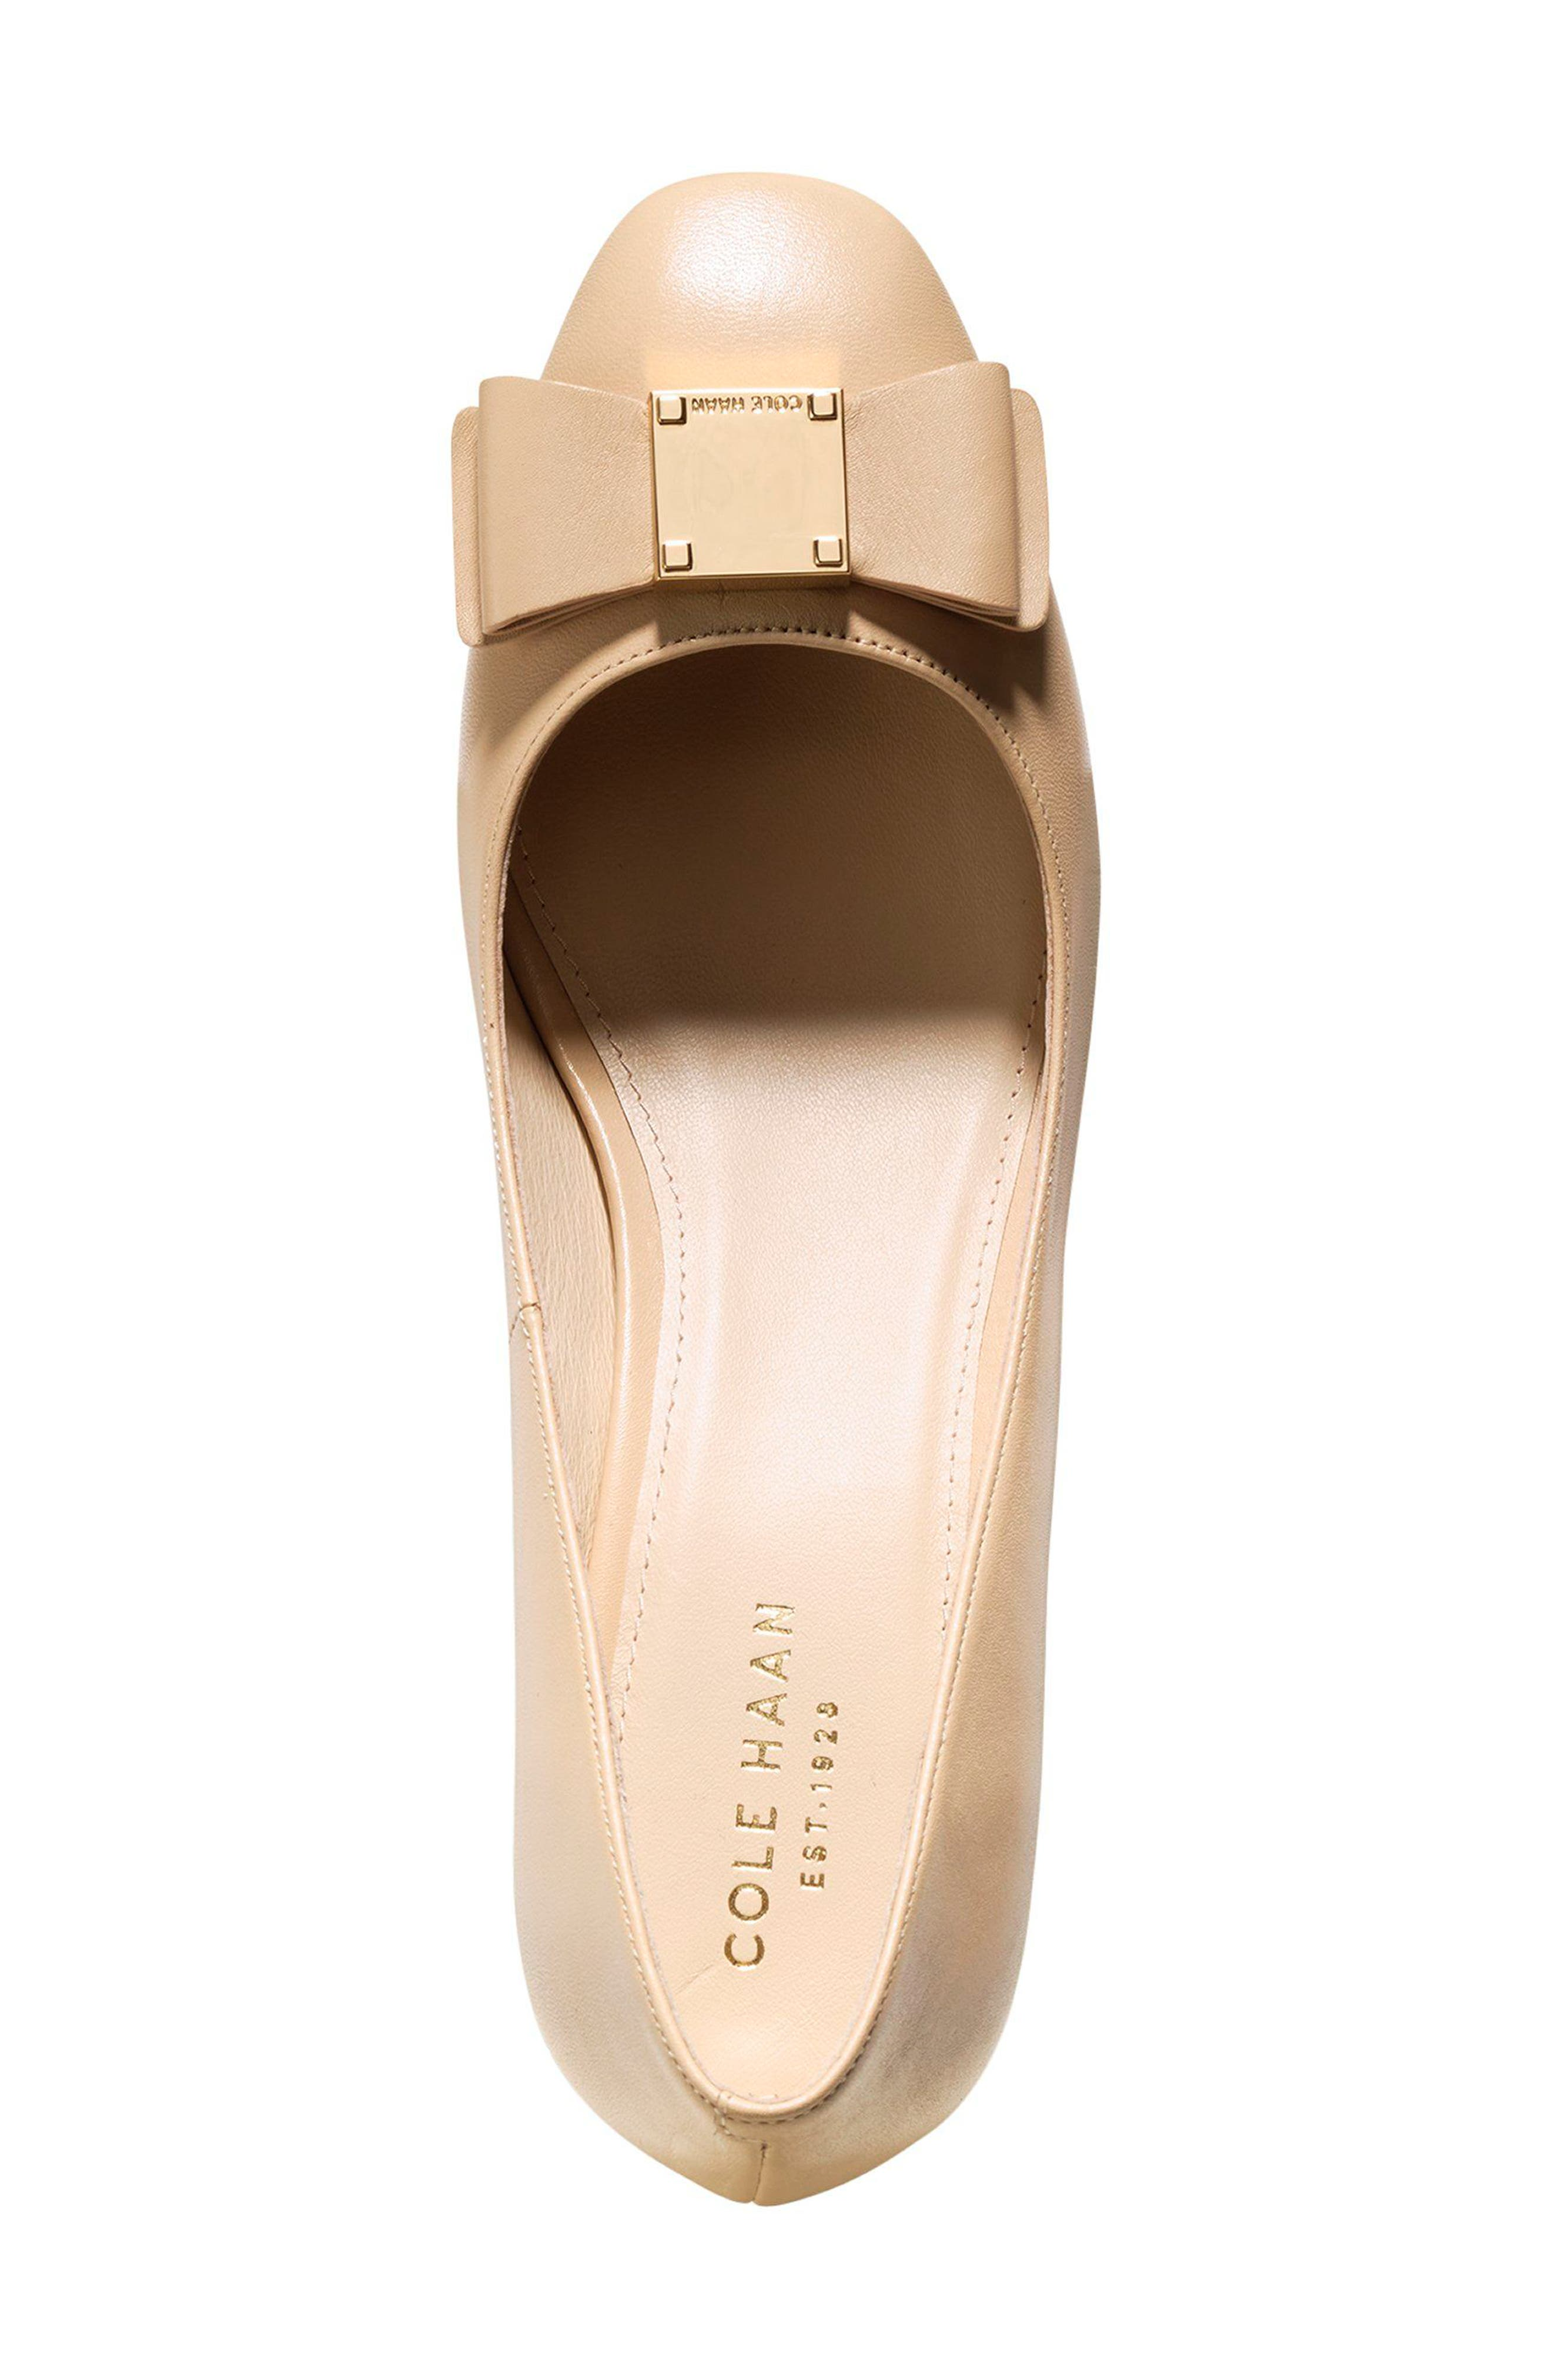 Tali Bow Pump,                             Alternate thumbnail 4, color,                             NUDE LEATHER